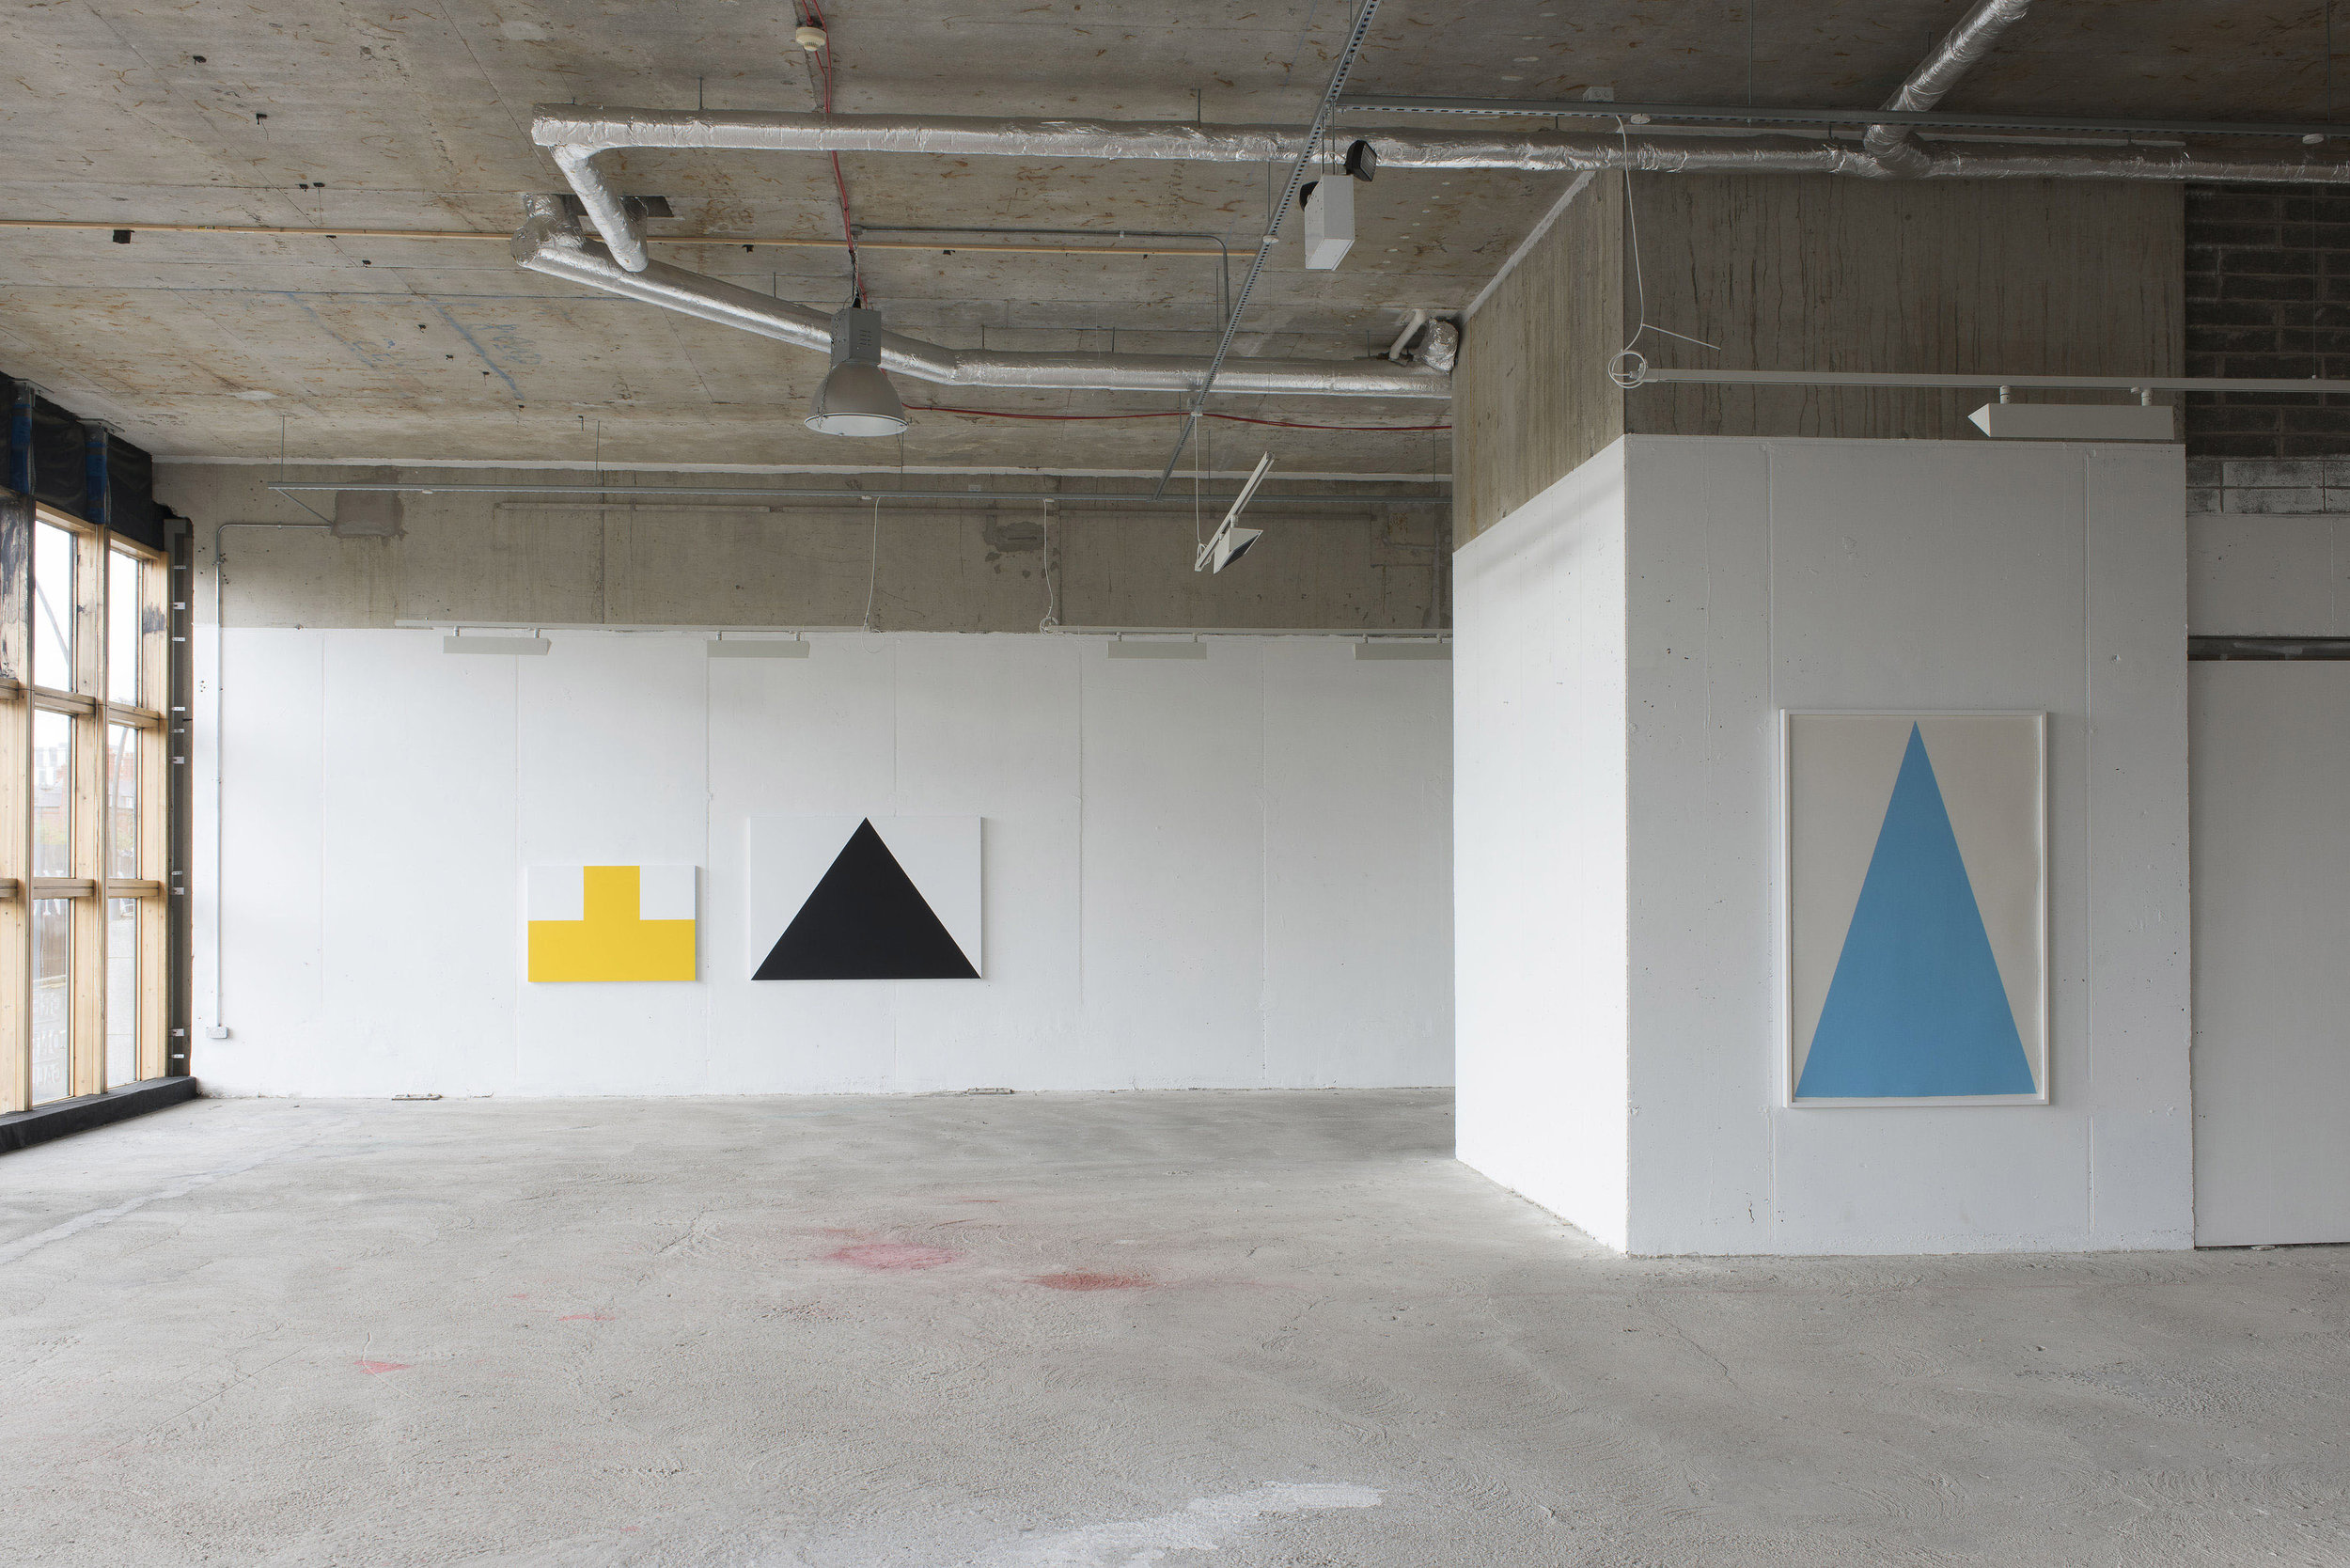 Installation view Green On Red Gallery, Dublin, 2016, Back wall: Yellow, Marine Both paintings  Acrylic on aluminium. Wall on right: Light Sky, Chalk pastel on paper